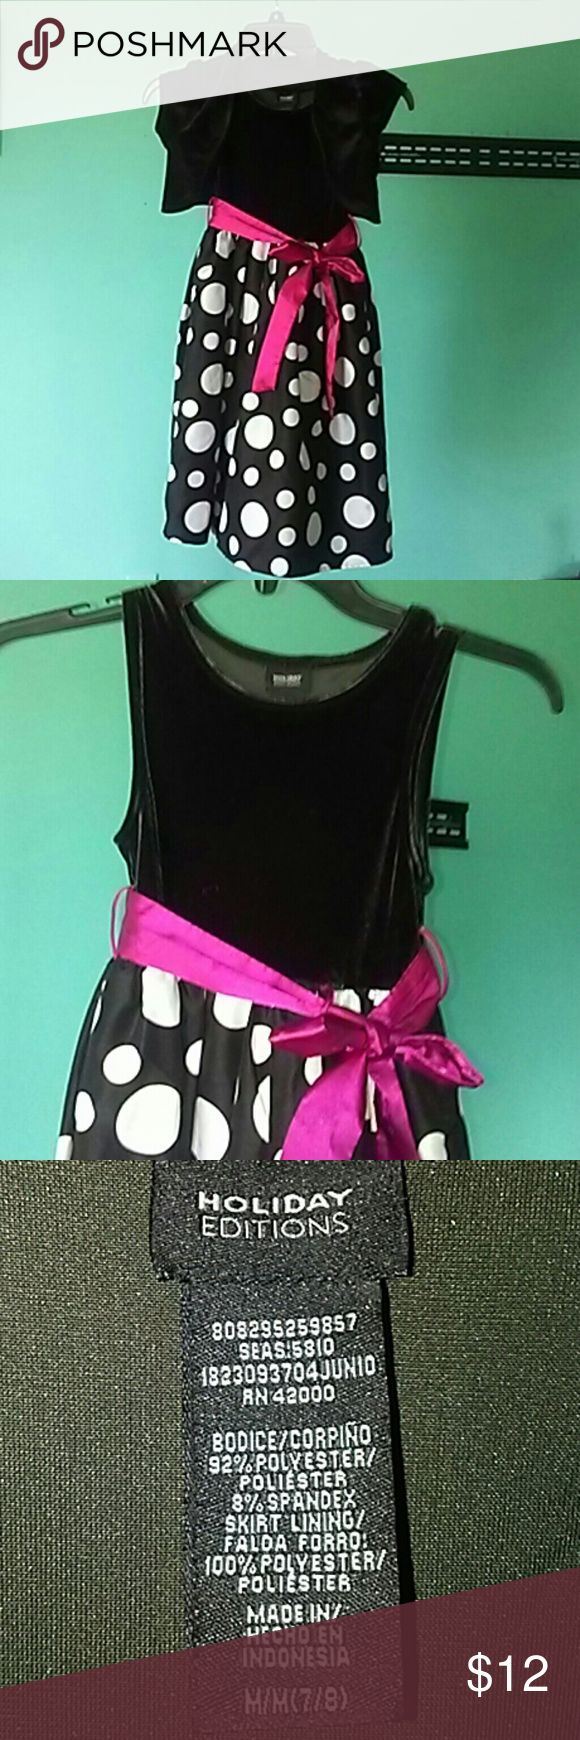 Holiday edition little girls formal dress Size 7-8 Holiday Edition little girls formal dress size 7-8 black and white polka dot bottom with pink sash. Has removable shrug. Holiday Edition Dresses Formal